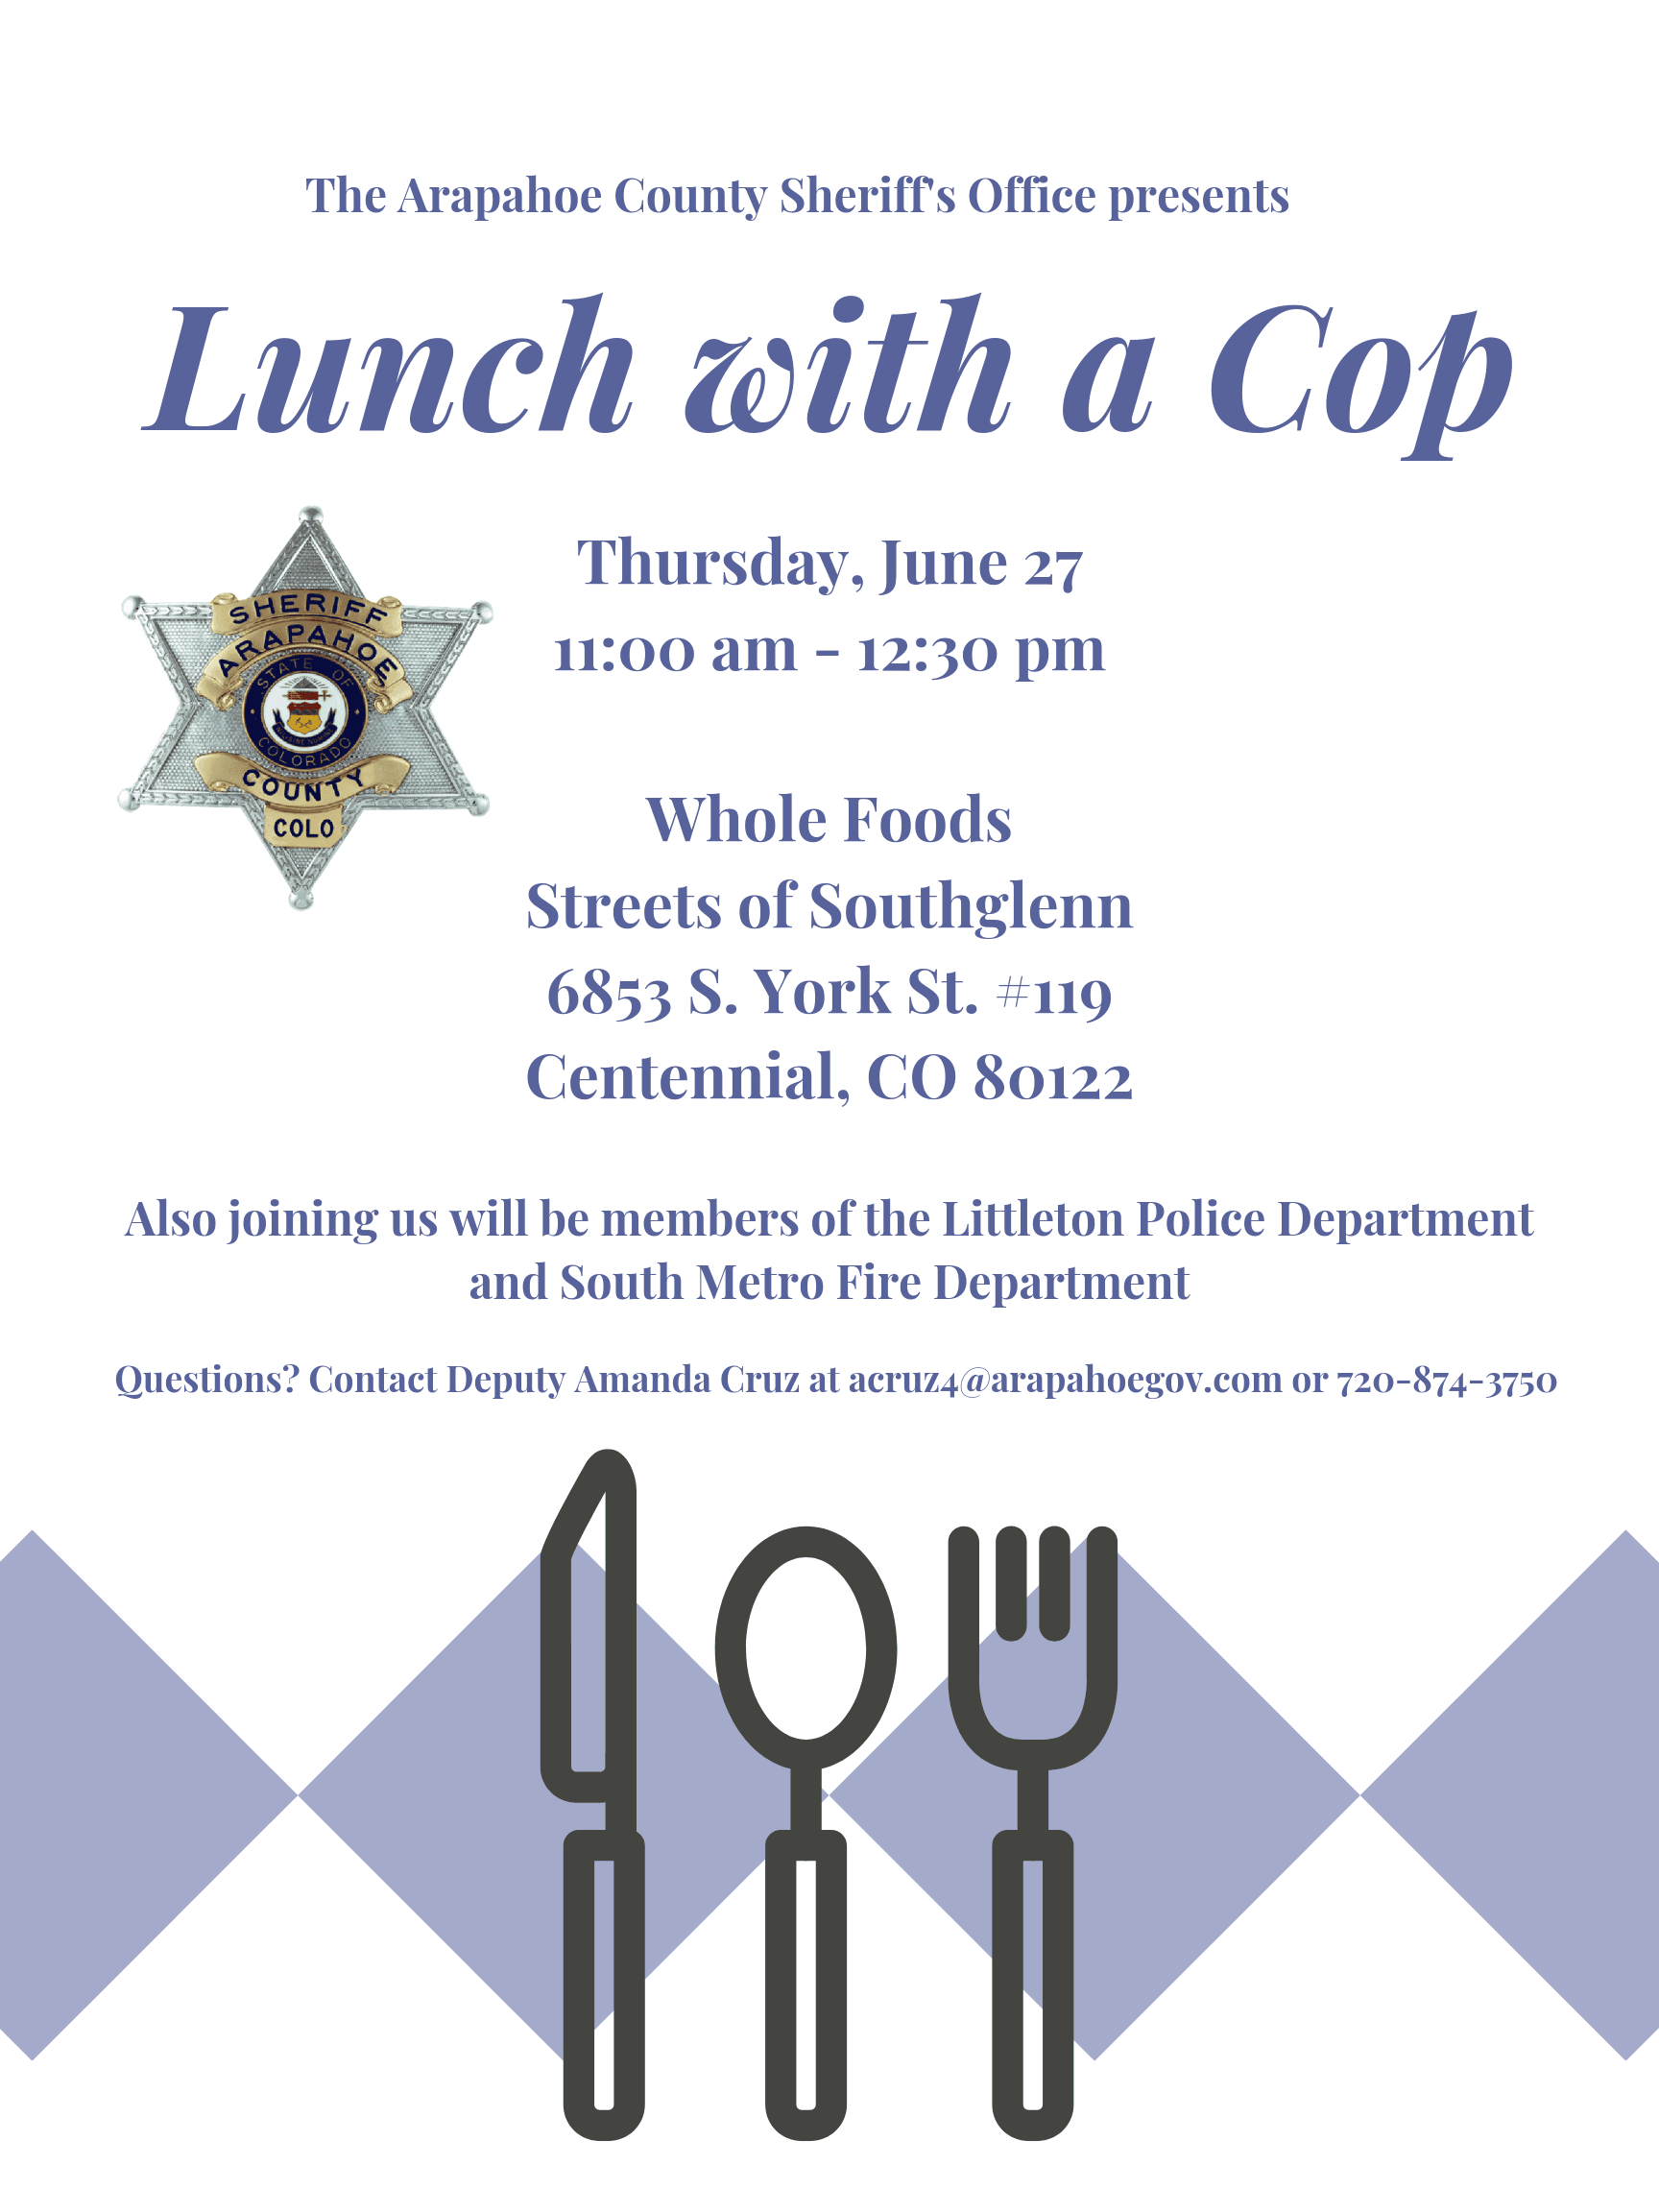 Lunch with a Cop